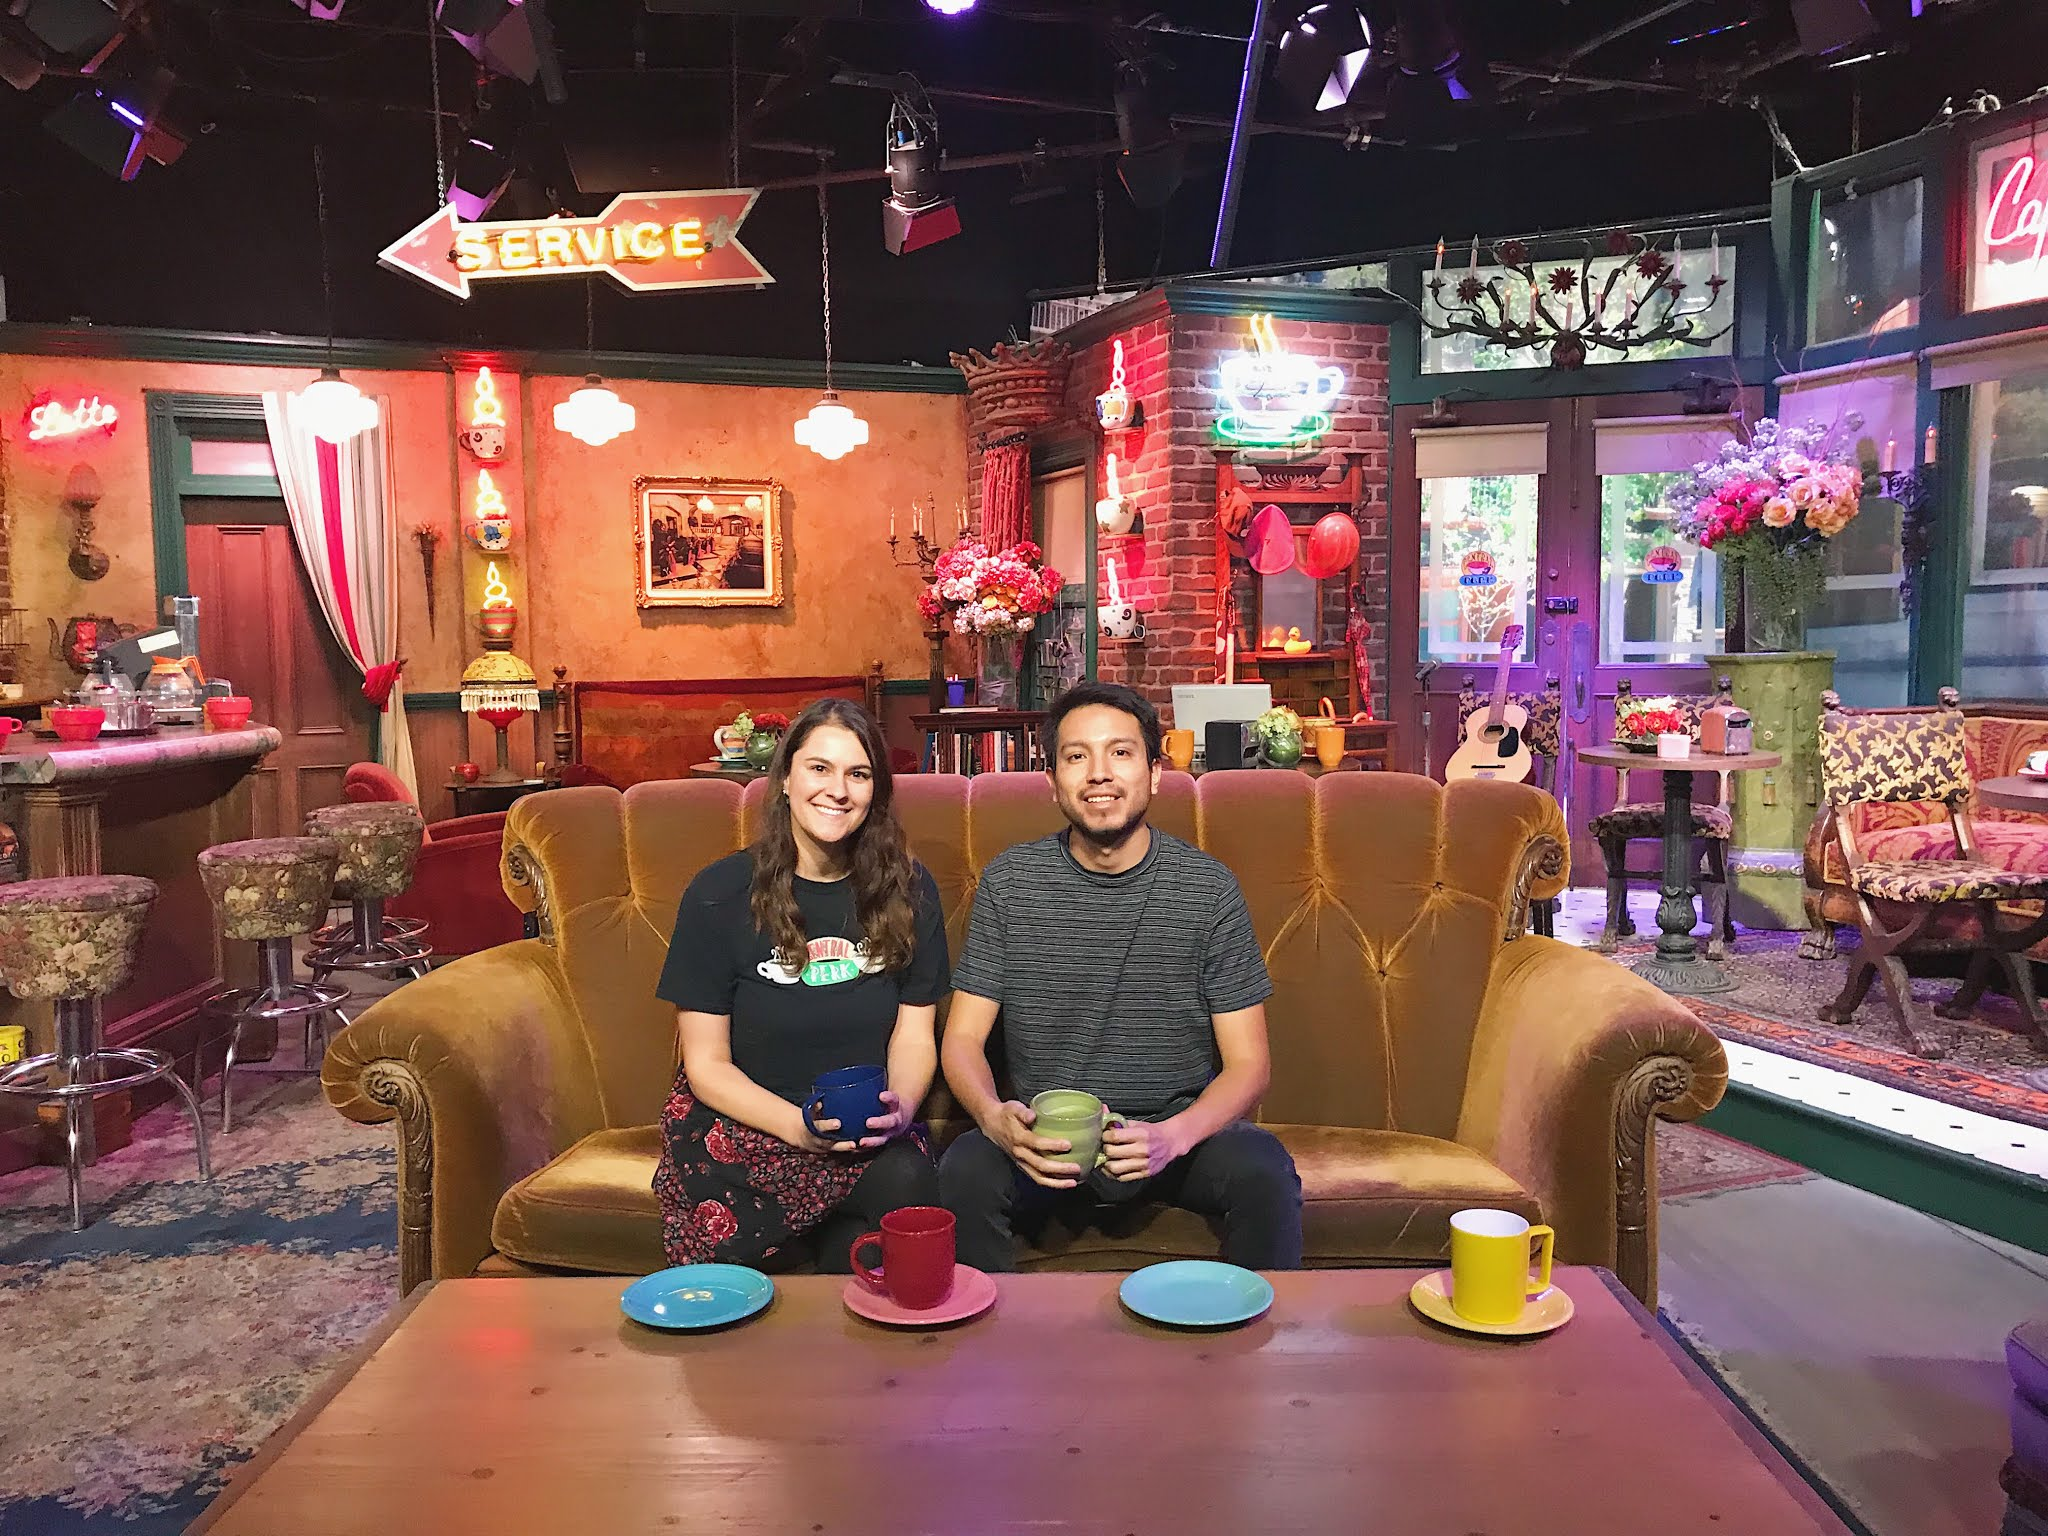 Is Central Perk Cafe From Friends real? Warner Bros Studio Tour Burbank California friends set central perk central perk friends friends studio friends coffee shop where was friends filmed friends central perk friends cafe central perk set